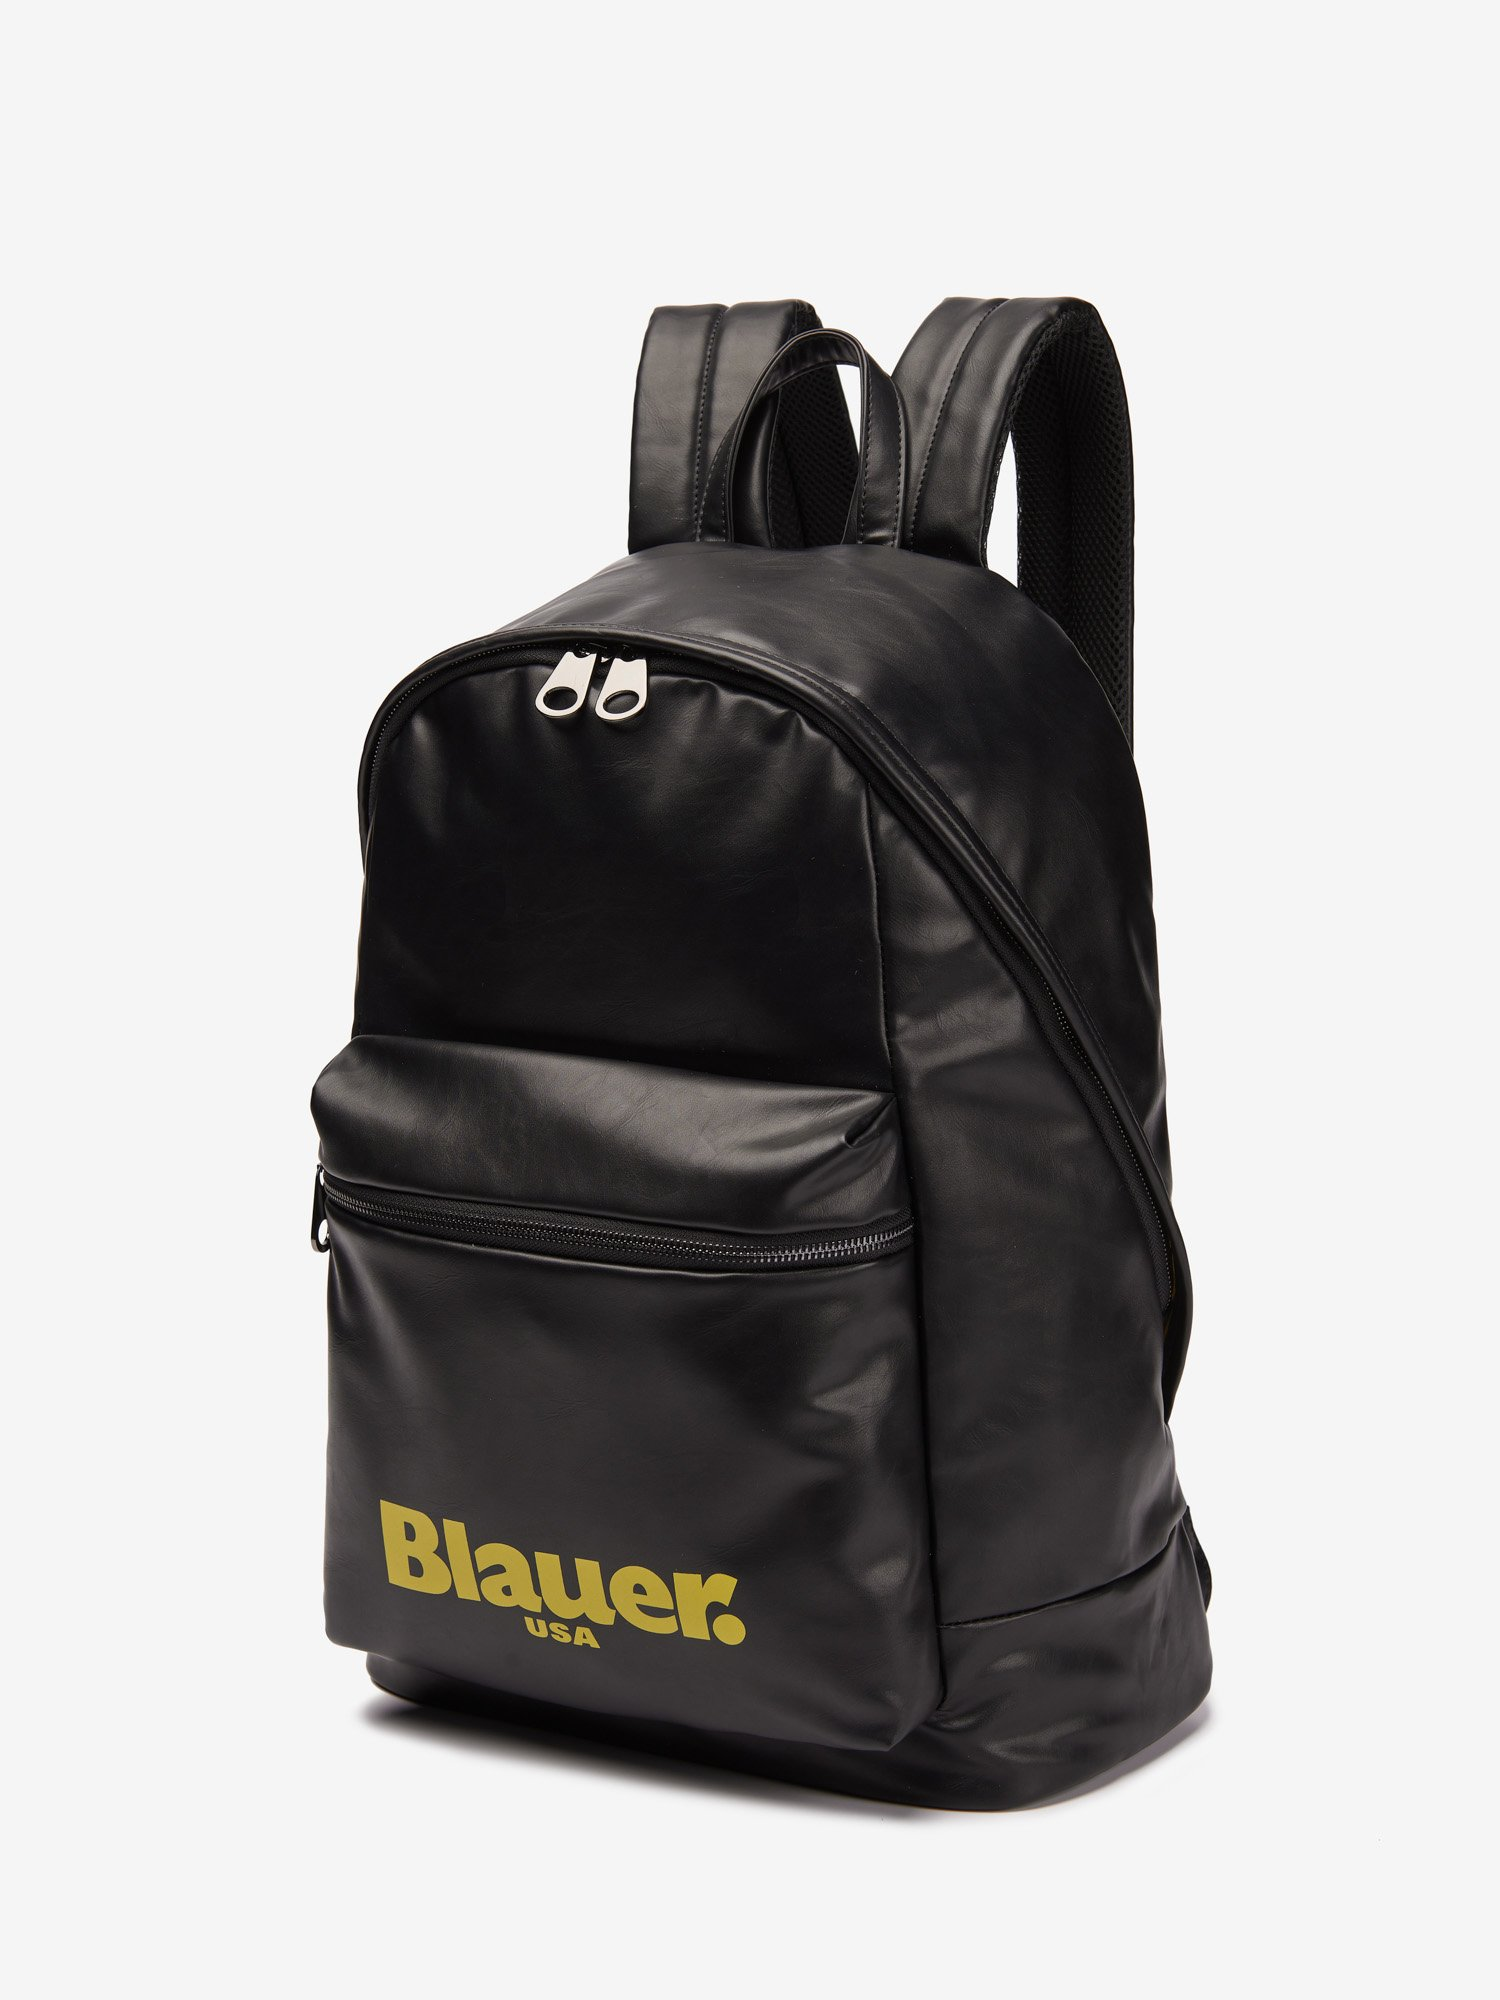 AVALON BACKPACK - Blauer